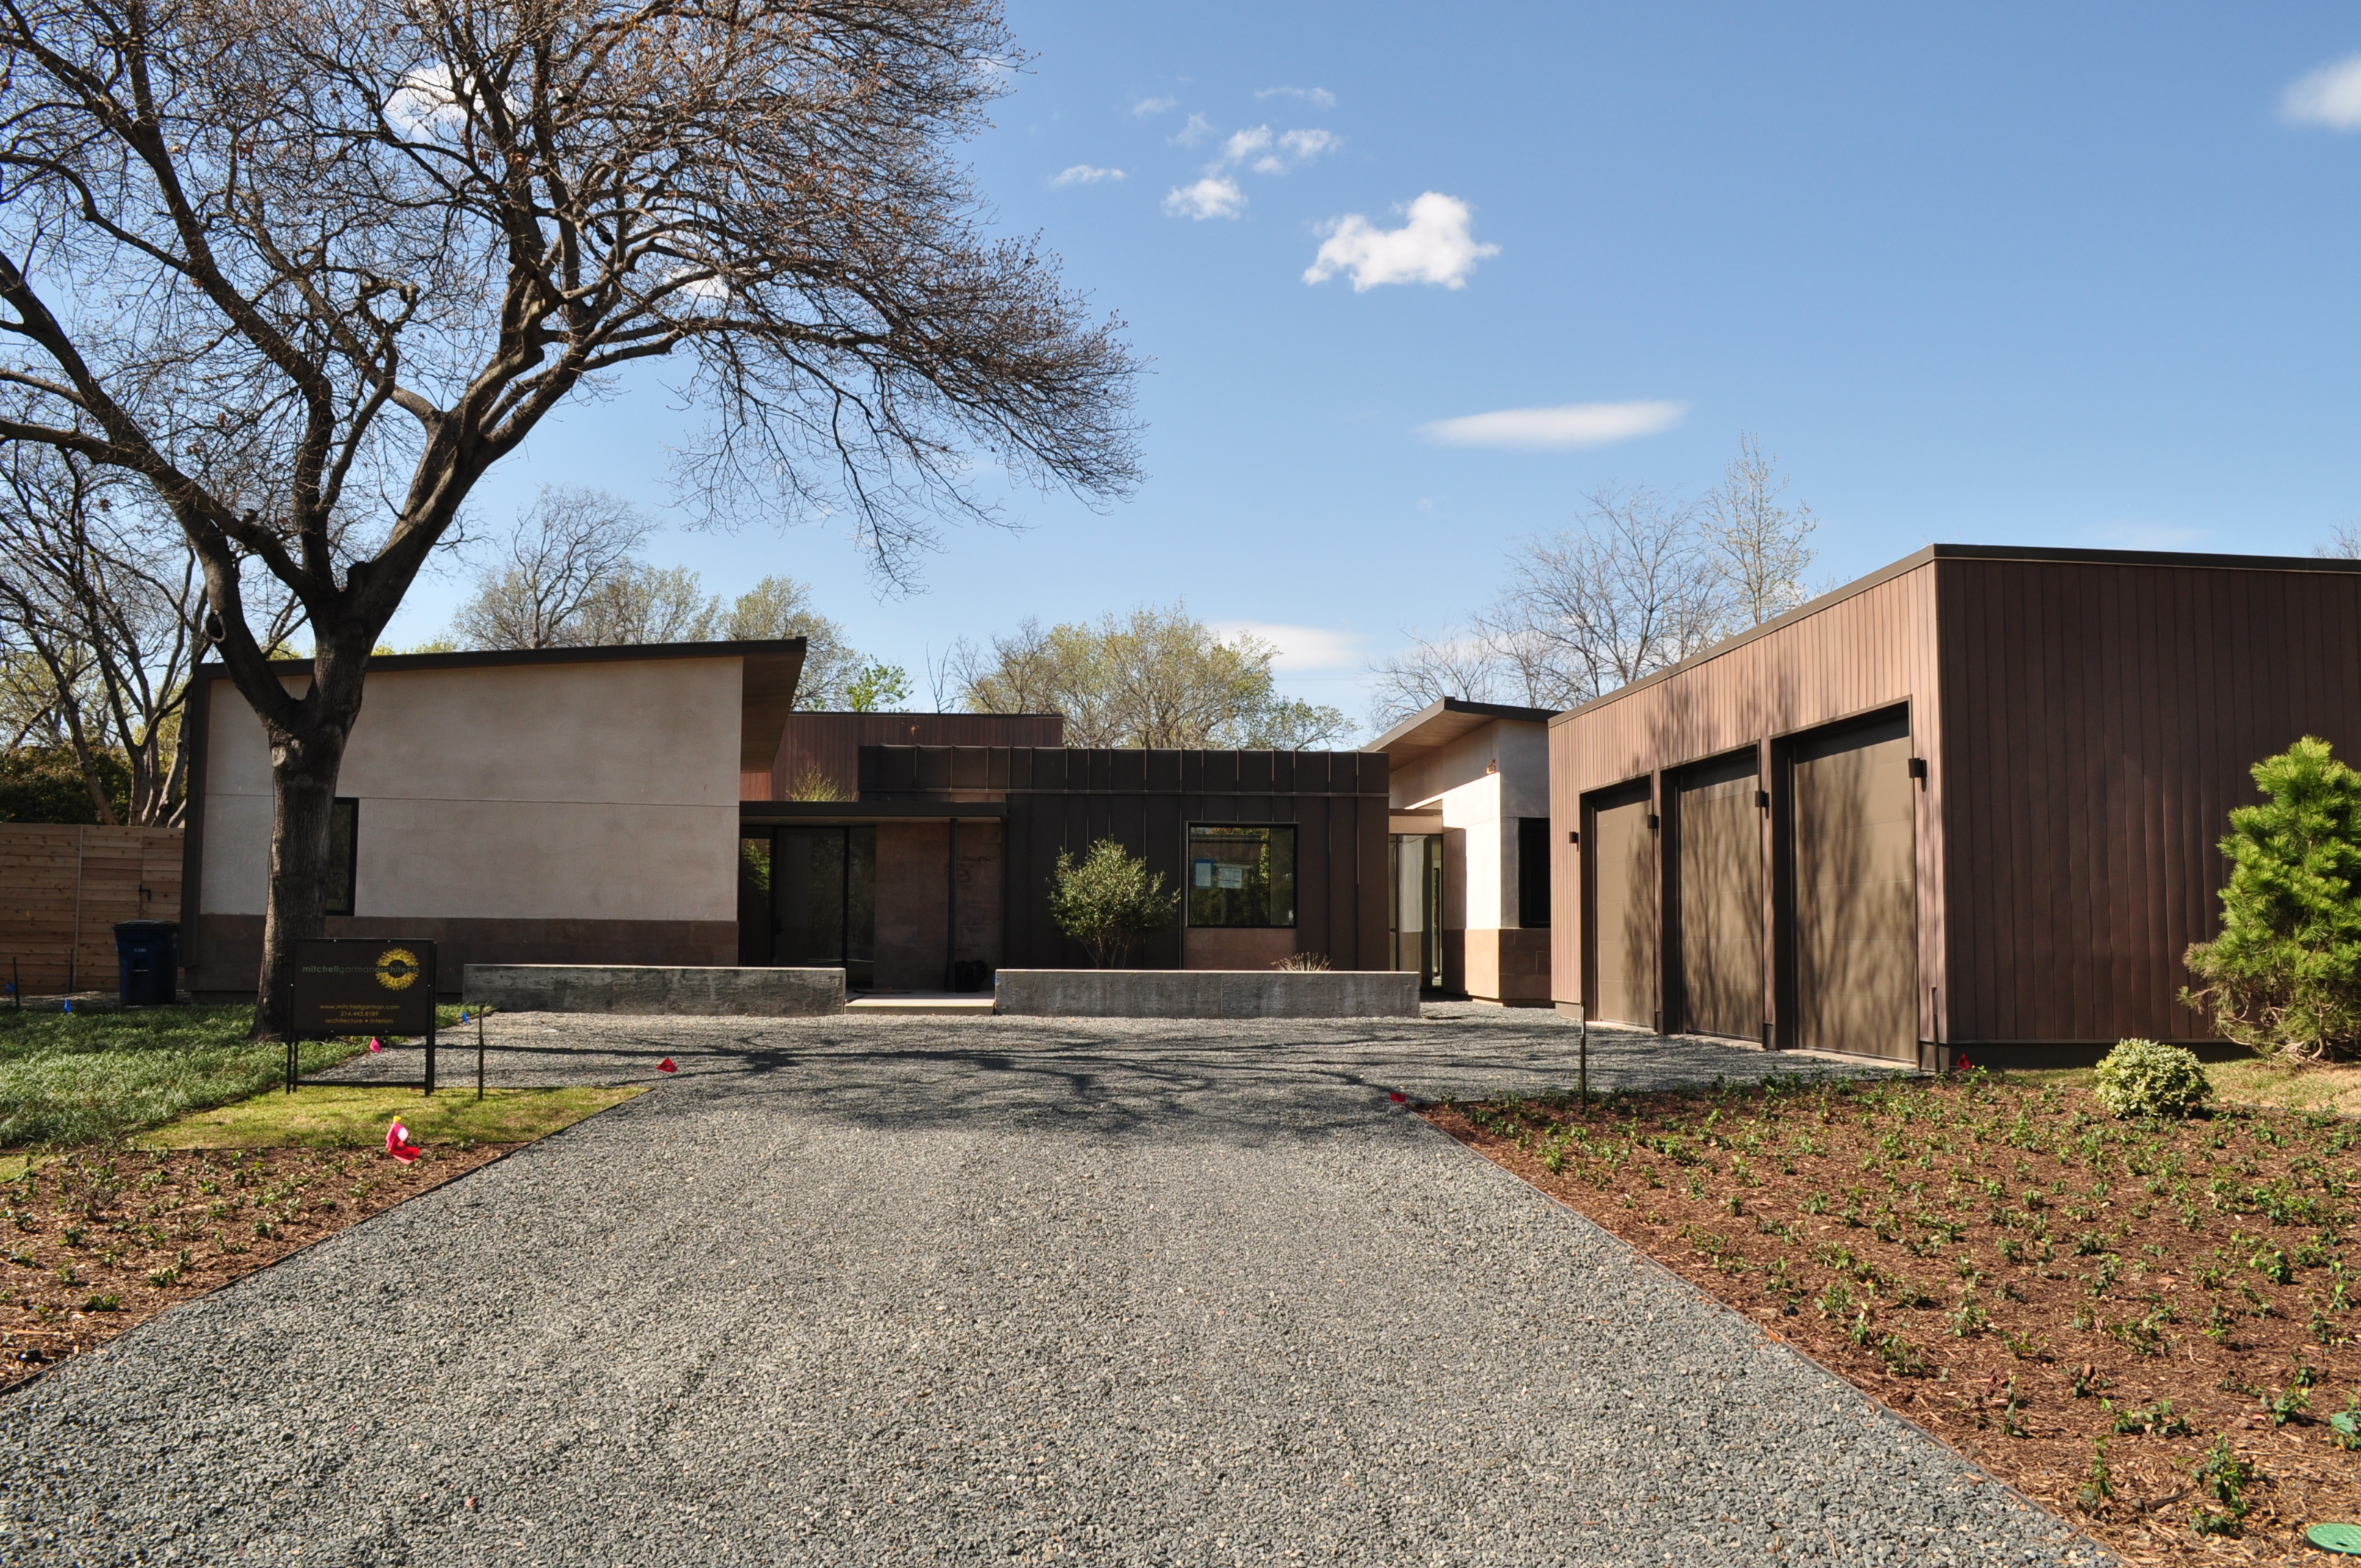 Please Join Us At The Dallas Center For Architecture For A Look At The  Early And Current Works Of MitchellGarman Architects, Including A  Residential Project ...